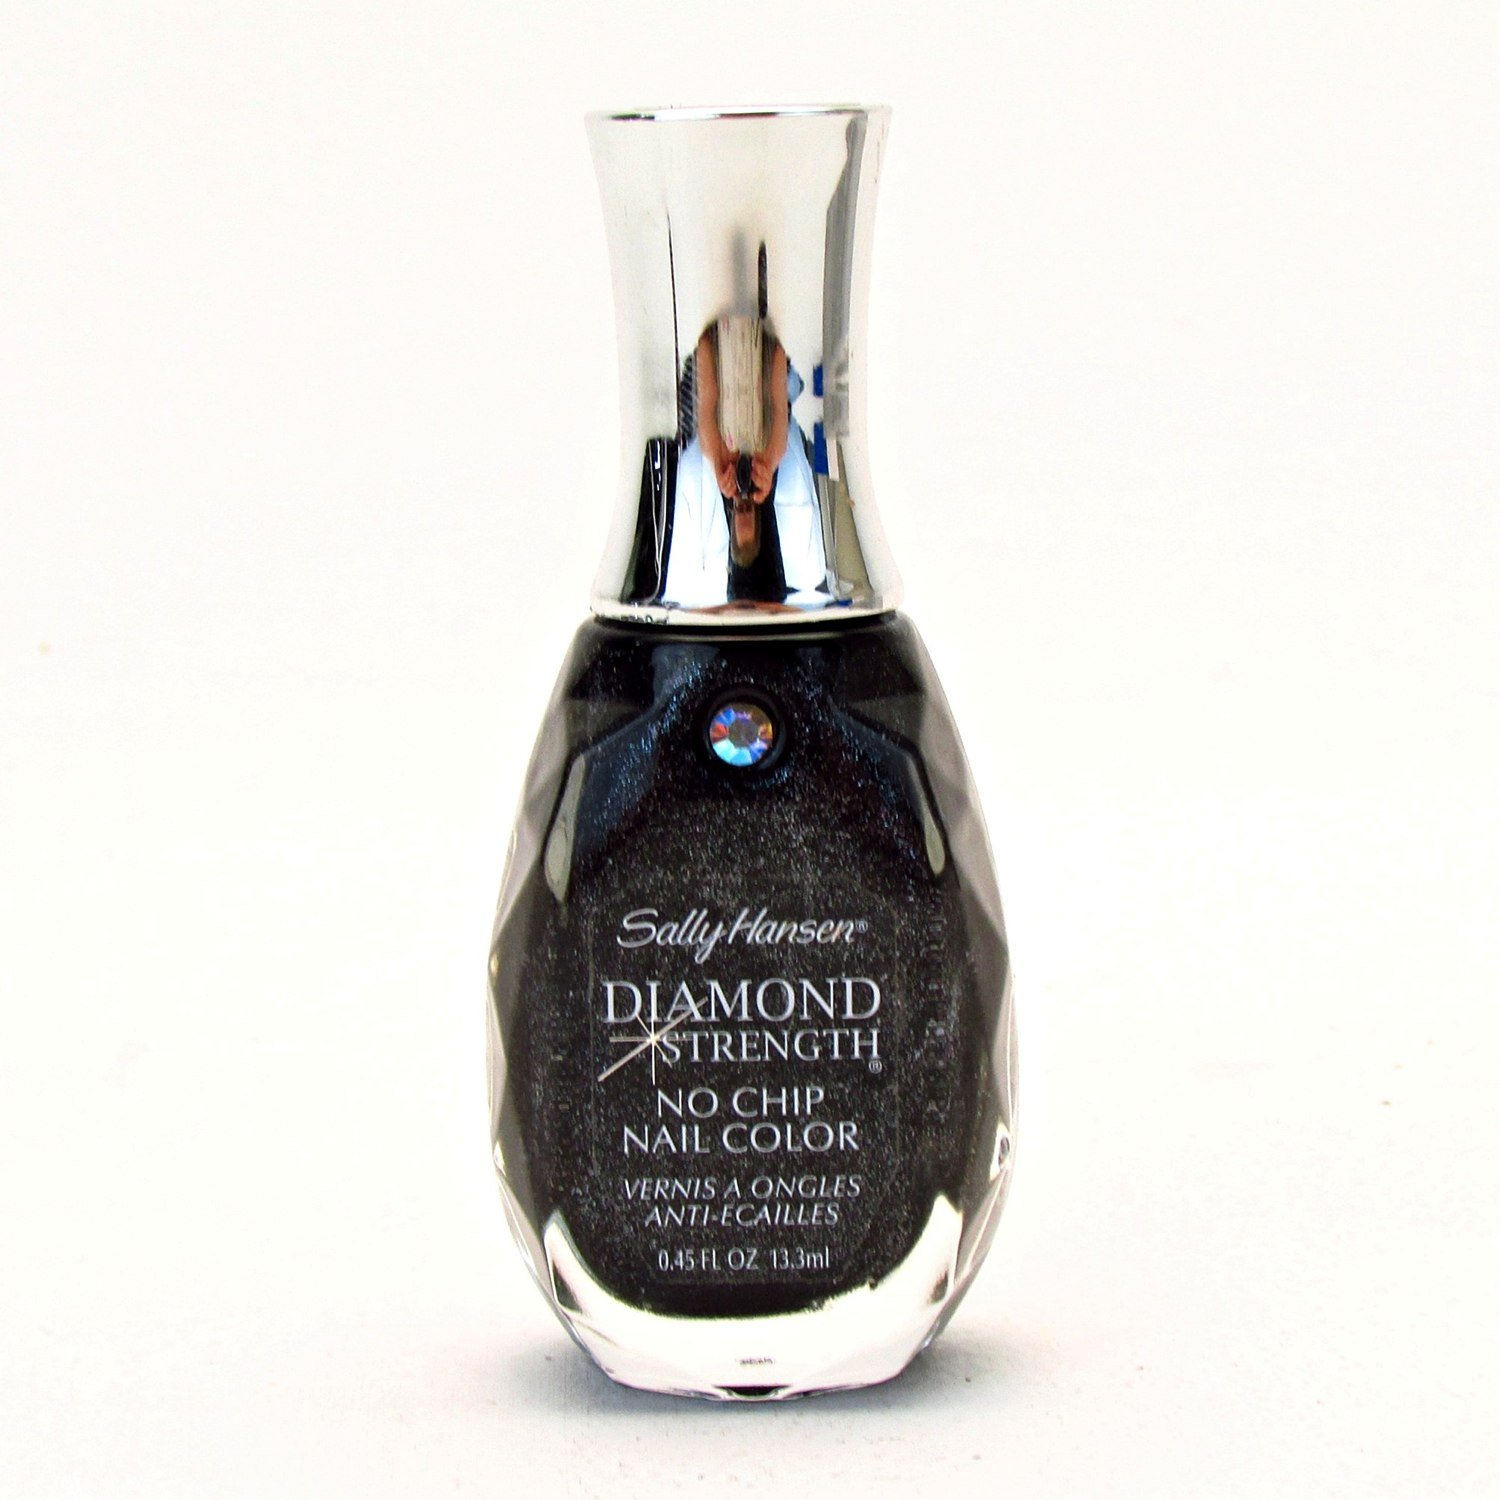 No Chip Nail Polish Reviews: Amazon.com: Sally Hansen Diamond Strength No Chip Nail